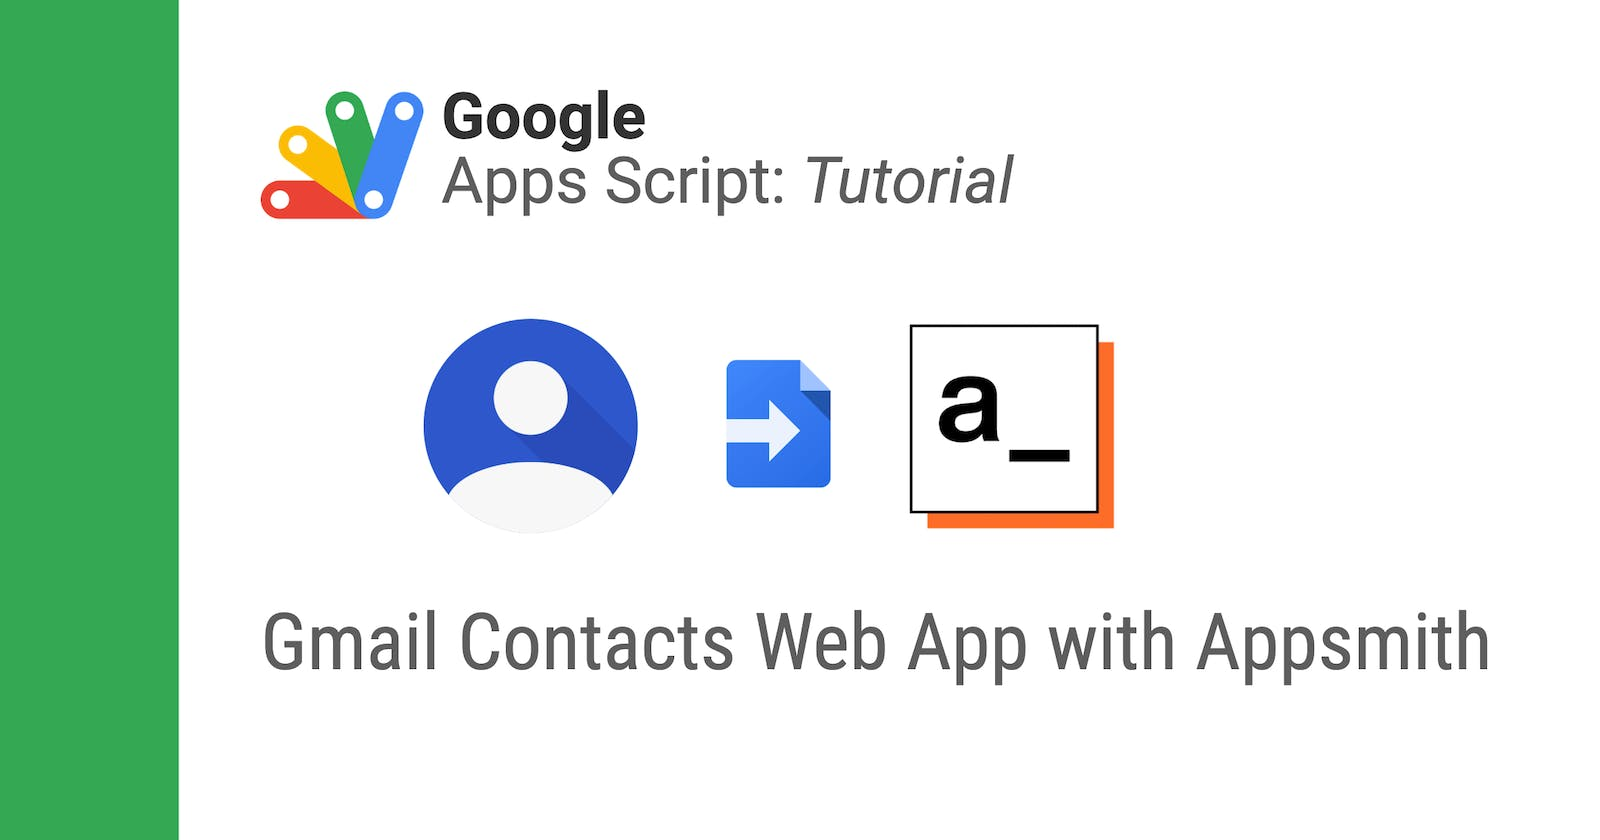 Adding Gmail Contacts to Appsmith using Apps Script